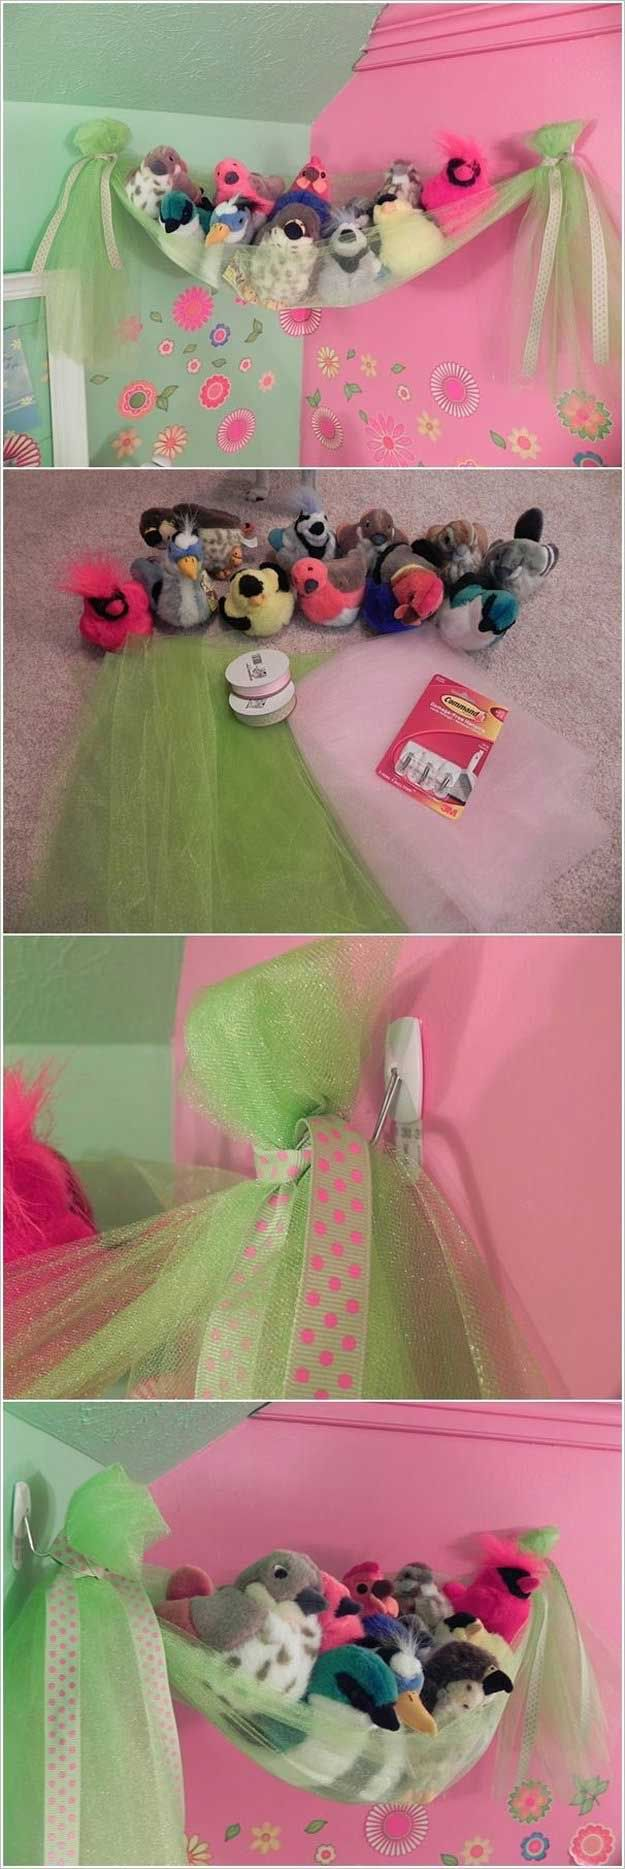 Fancy Bird's Nest | 24 Smart DIY Toy & Crafts Storage Solutions | Home Organization Ideas and Life Hacks : http://diyready.com/toy-storage-solutions-life-hack/